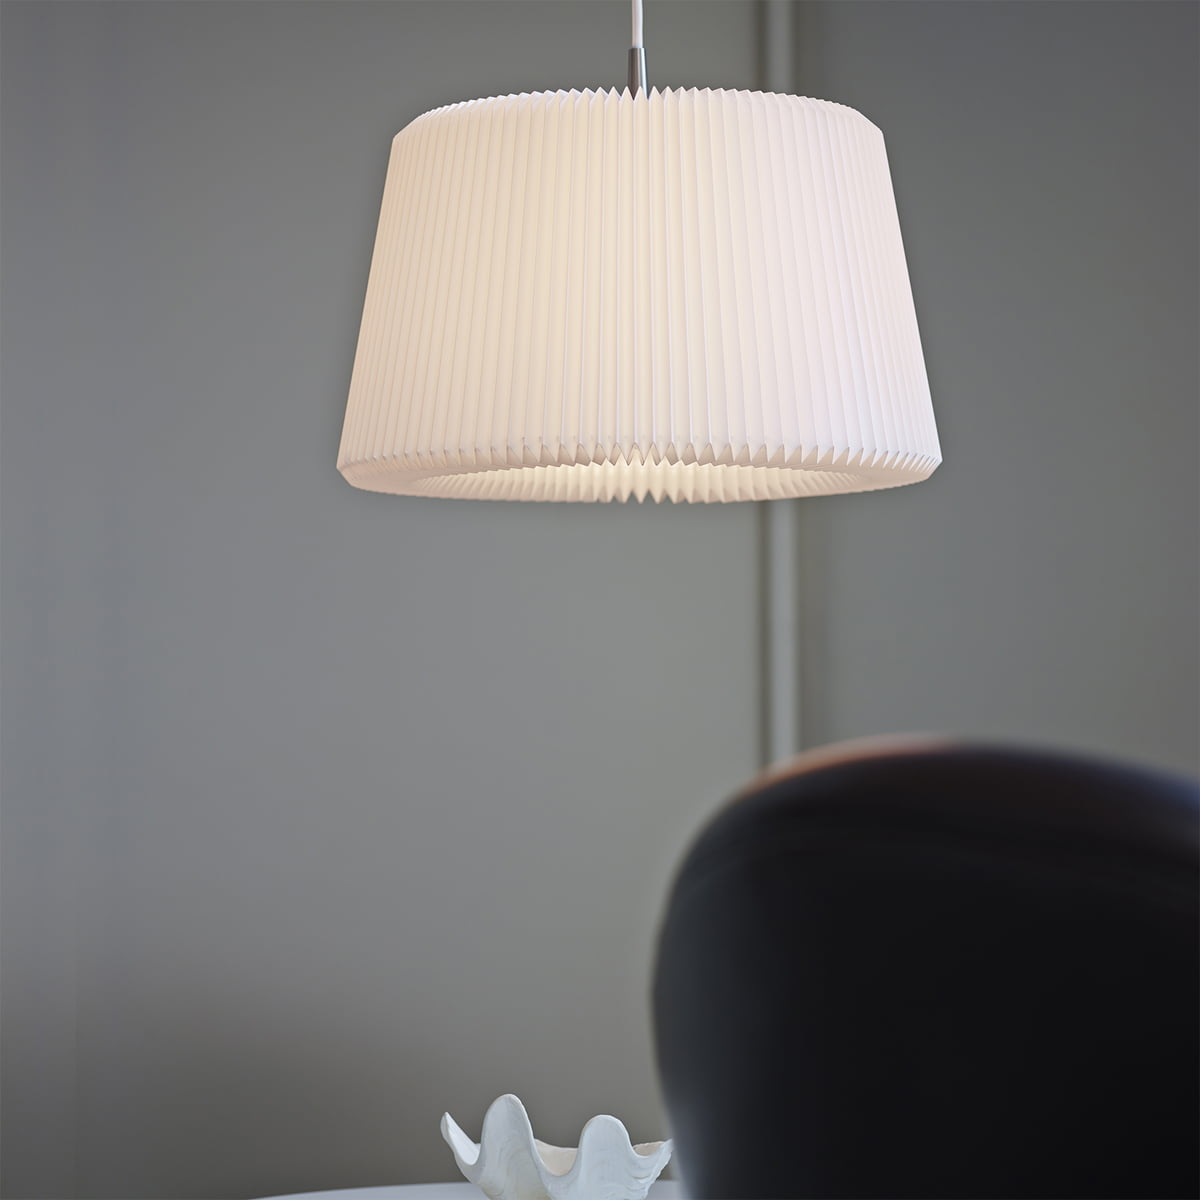 purchase the snowdrop pendant lamp by le klint